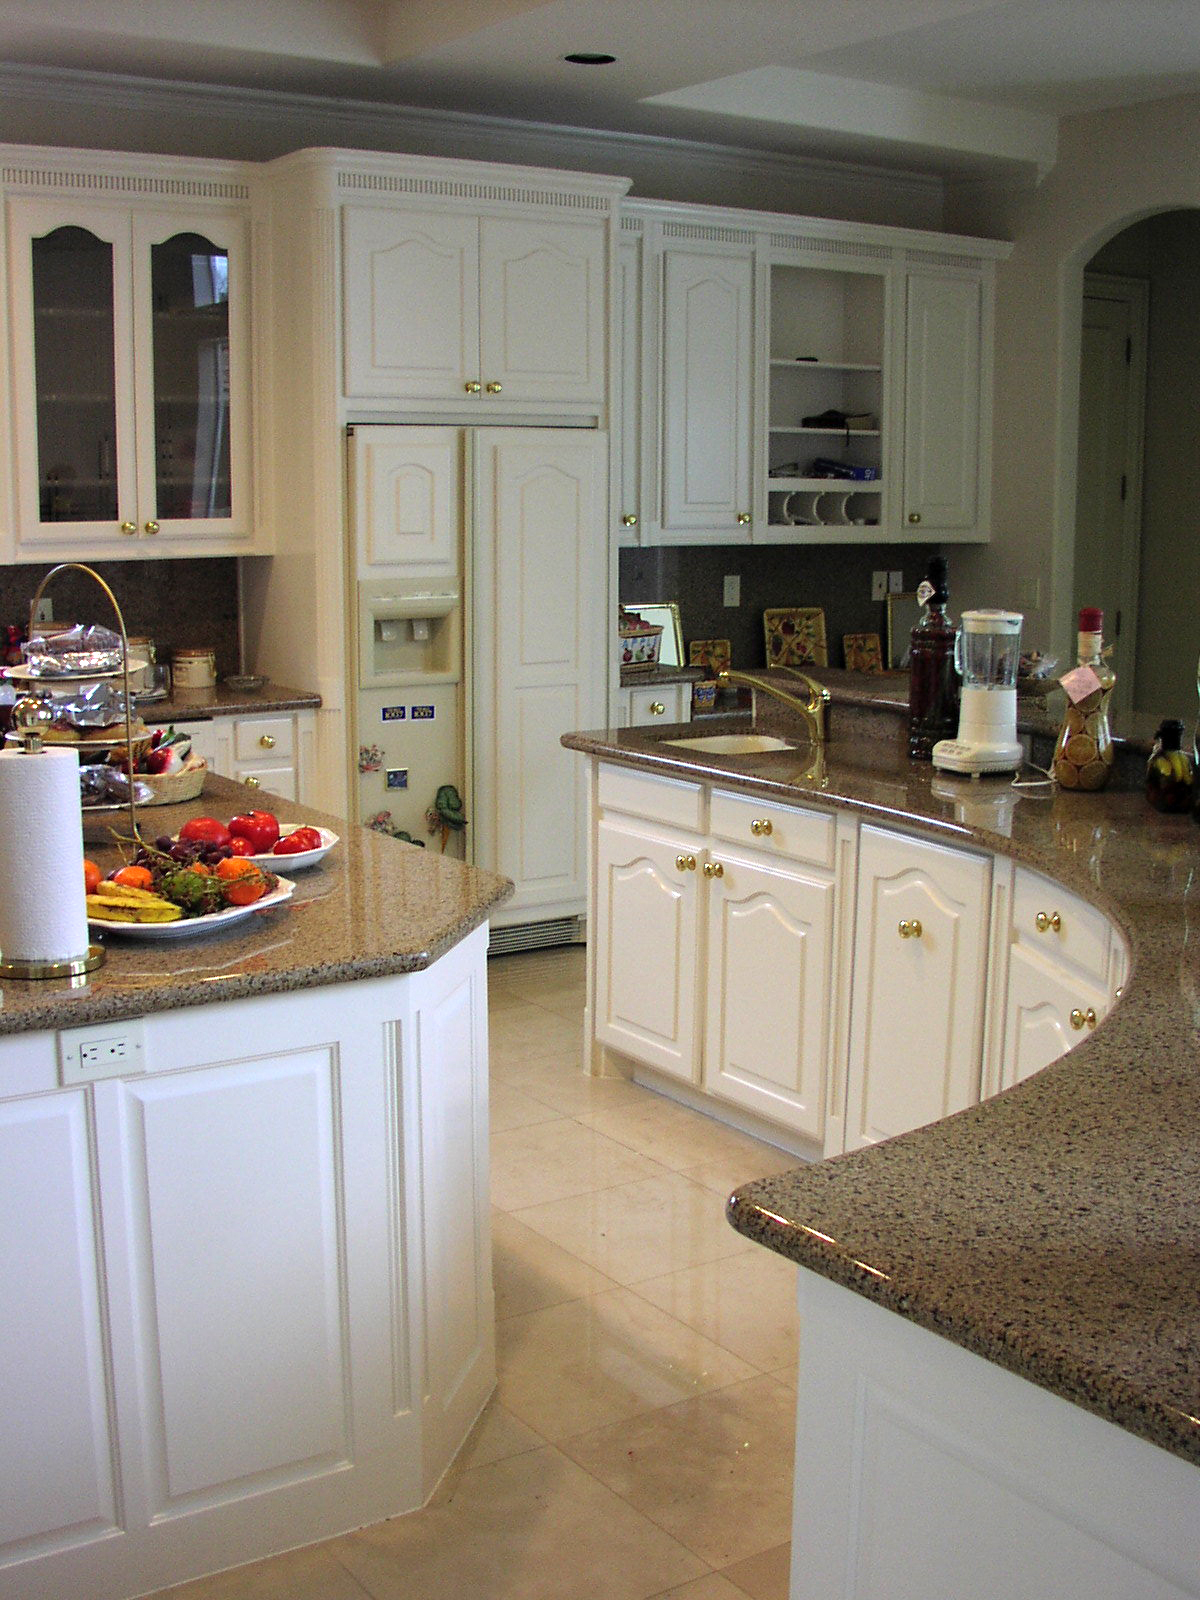 100 kitchen cabinets company adornus cabinetry for Kitchen cabinet companies